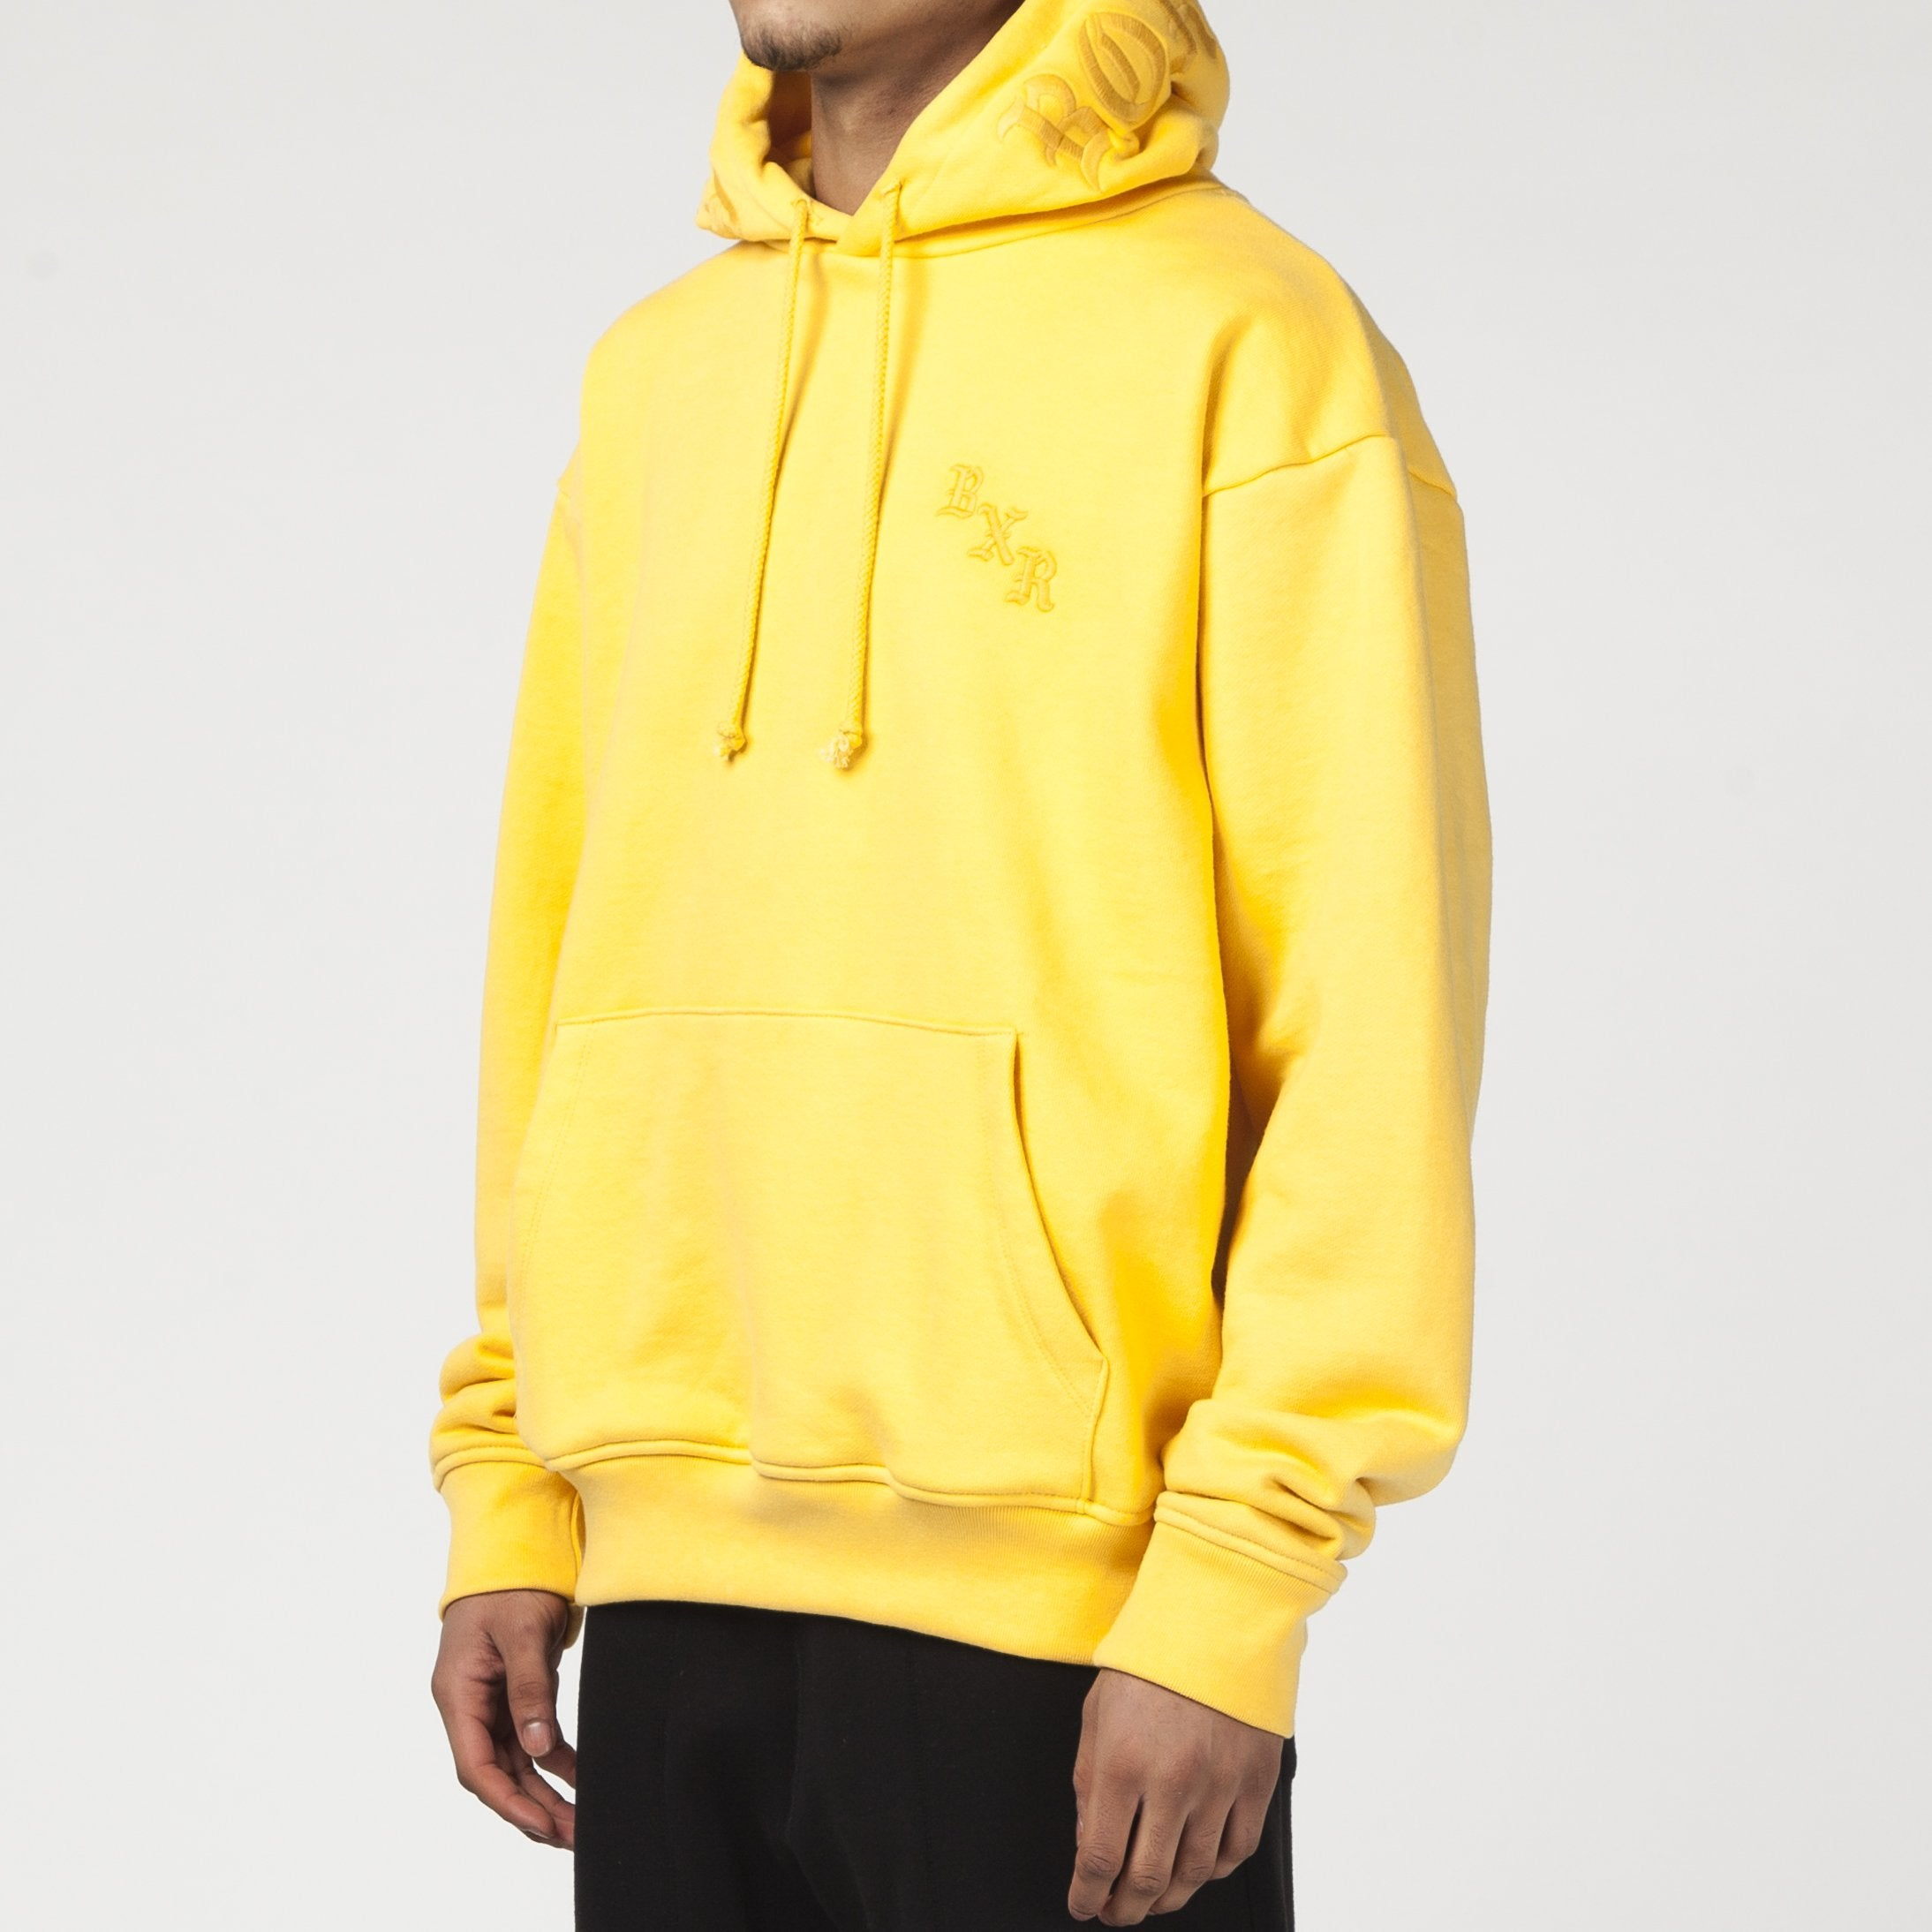 asics pullover hoodie yellow Sale,up to 79% Discounts d235d28f67